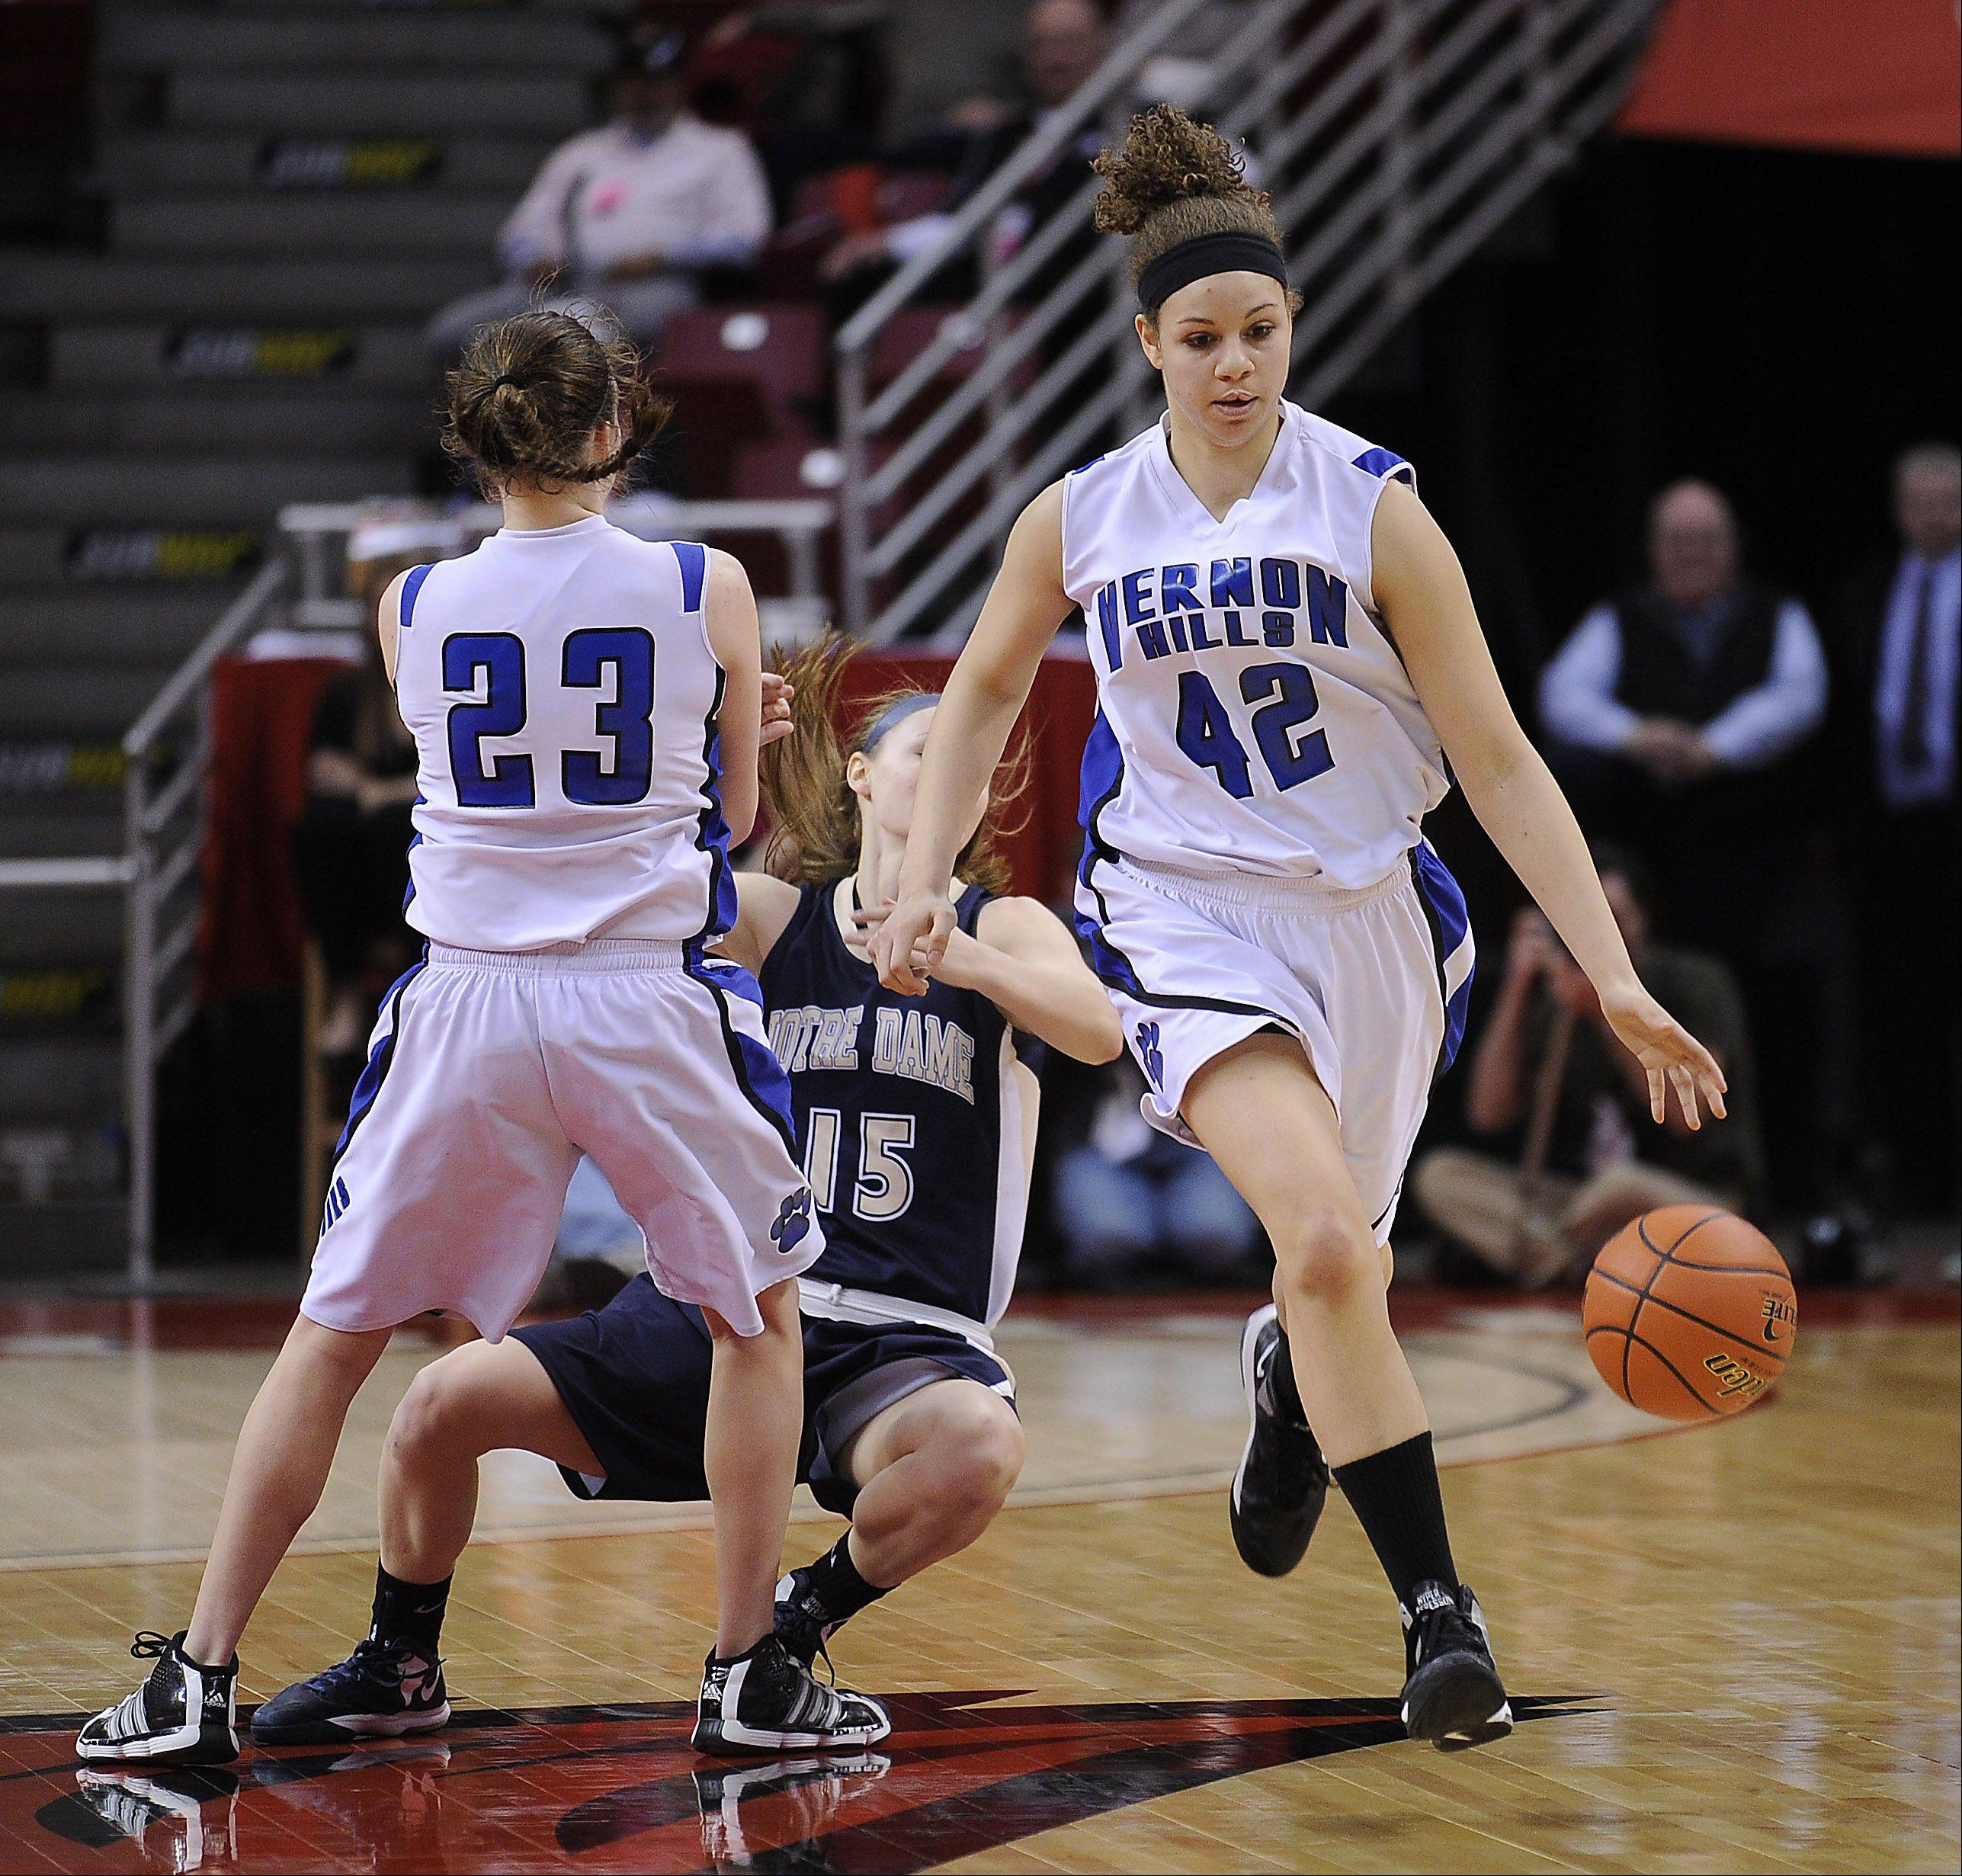 Vernon Hills Lauren Webb brings the ball down court as teammate Brie Bahlmann sets a block on Quincy Notre Dame Notre Dame's Kassidy Gengenbacher in the fourth quarter at the Class 3A state girls basketball championship in Normal on Saturday.